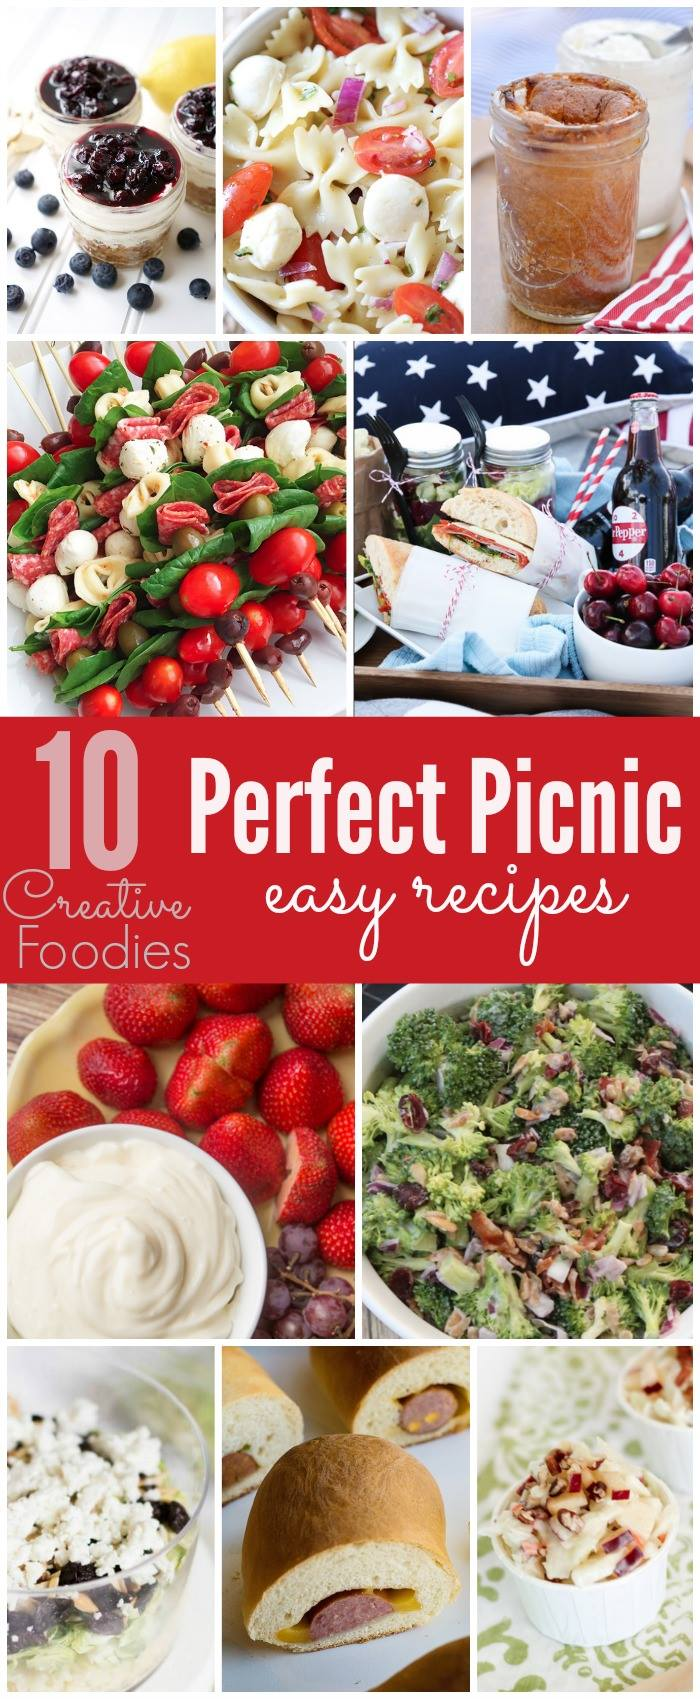 10 Perfect Picnic Recipes